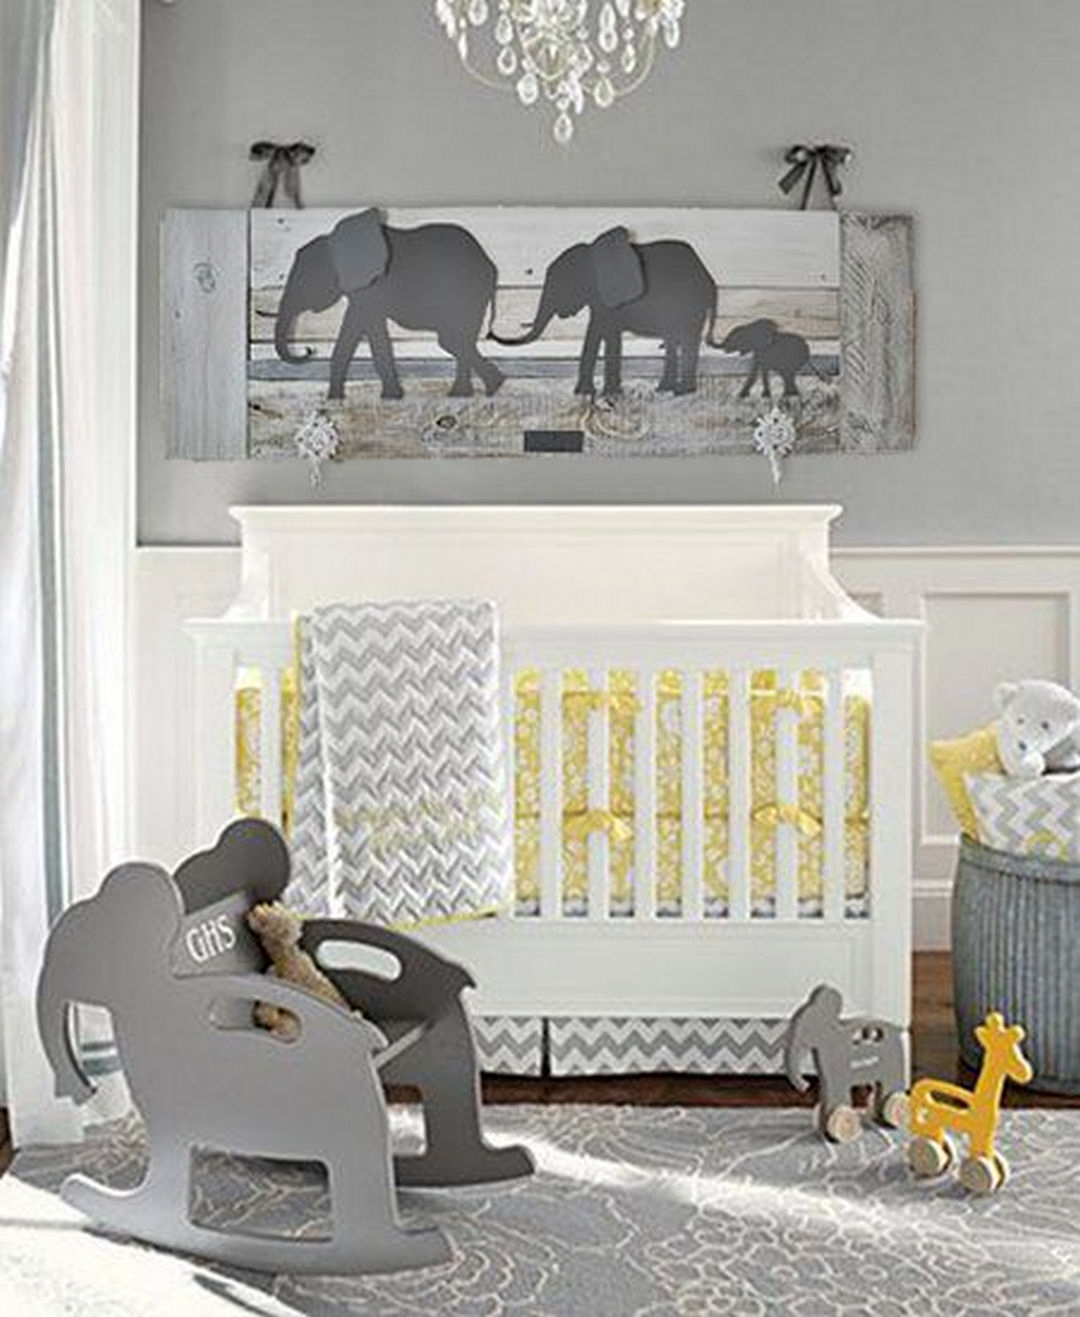 Baby Room Ideas Nursery Themes And Decor: 10 Ways You Can Reinvent Nursery Decor Without Looking